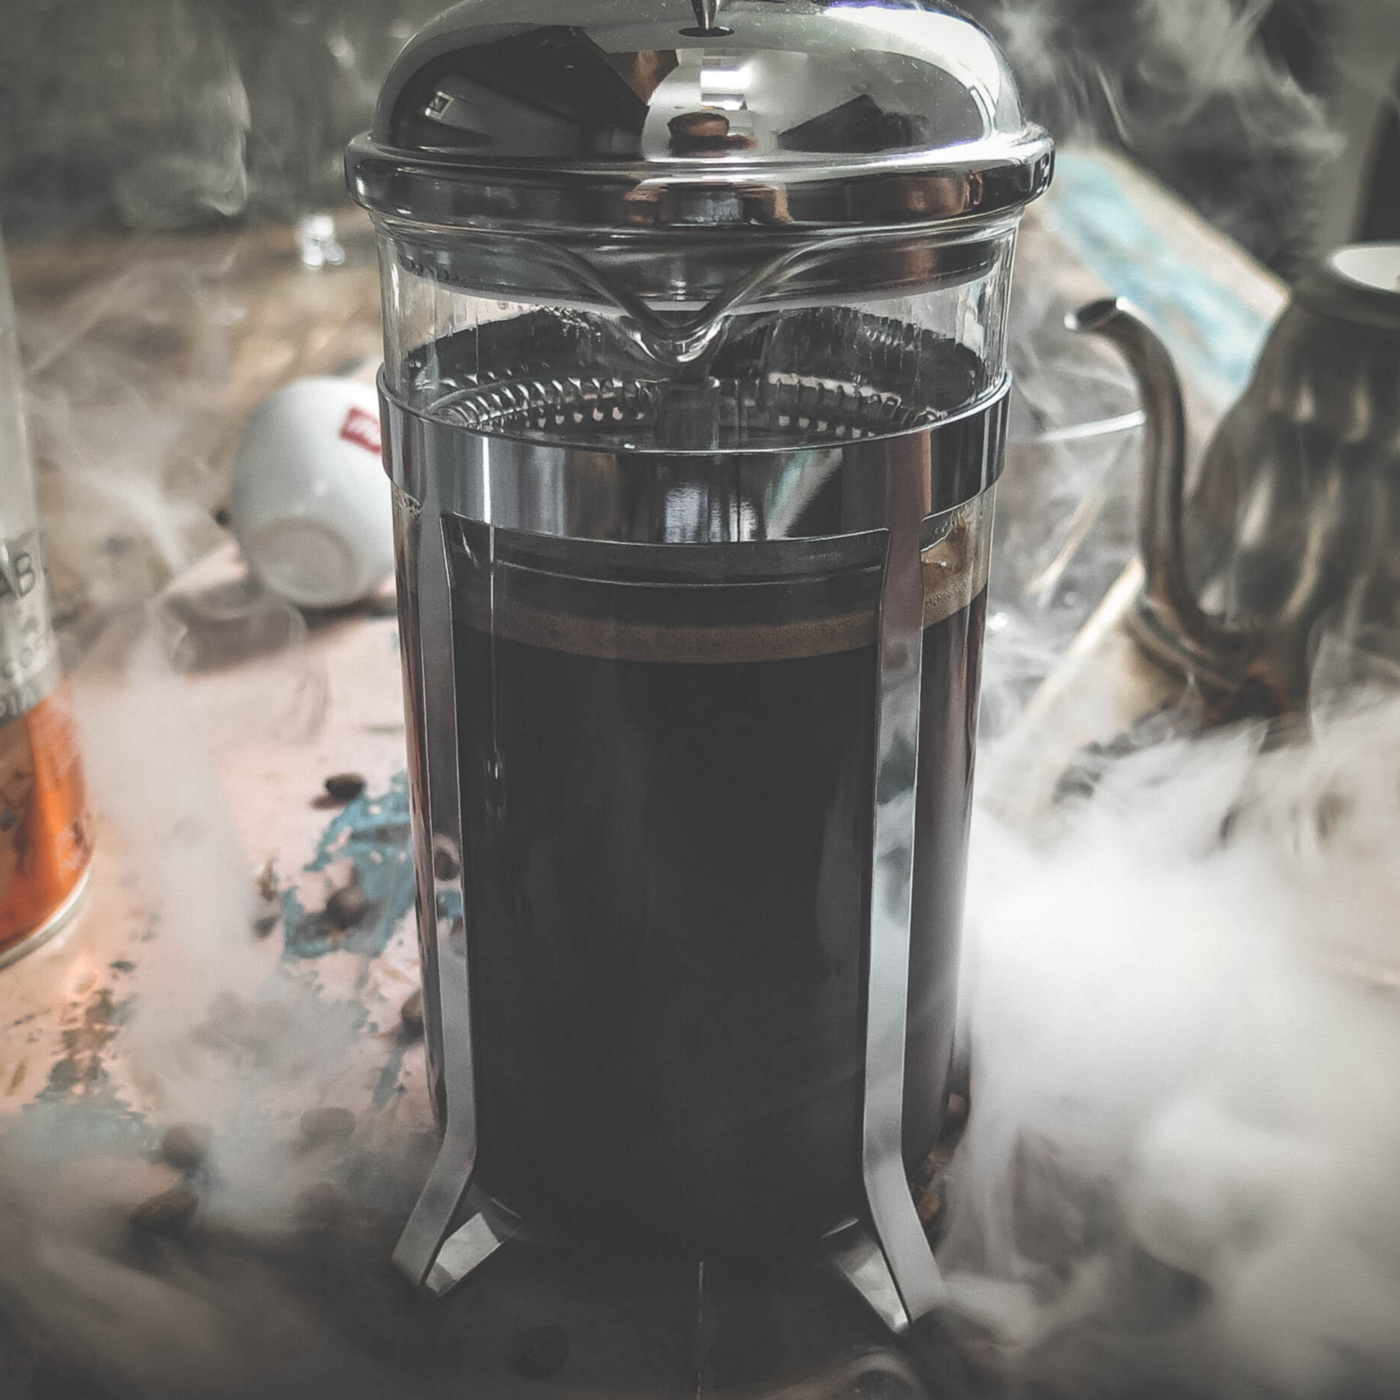 A view of a French press coffee maker with freshly brewed coffee surrounded by hot smoke and other coffee equipment.